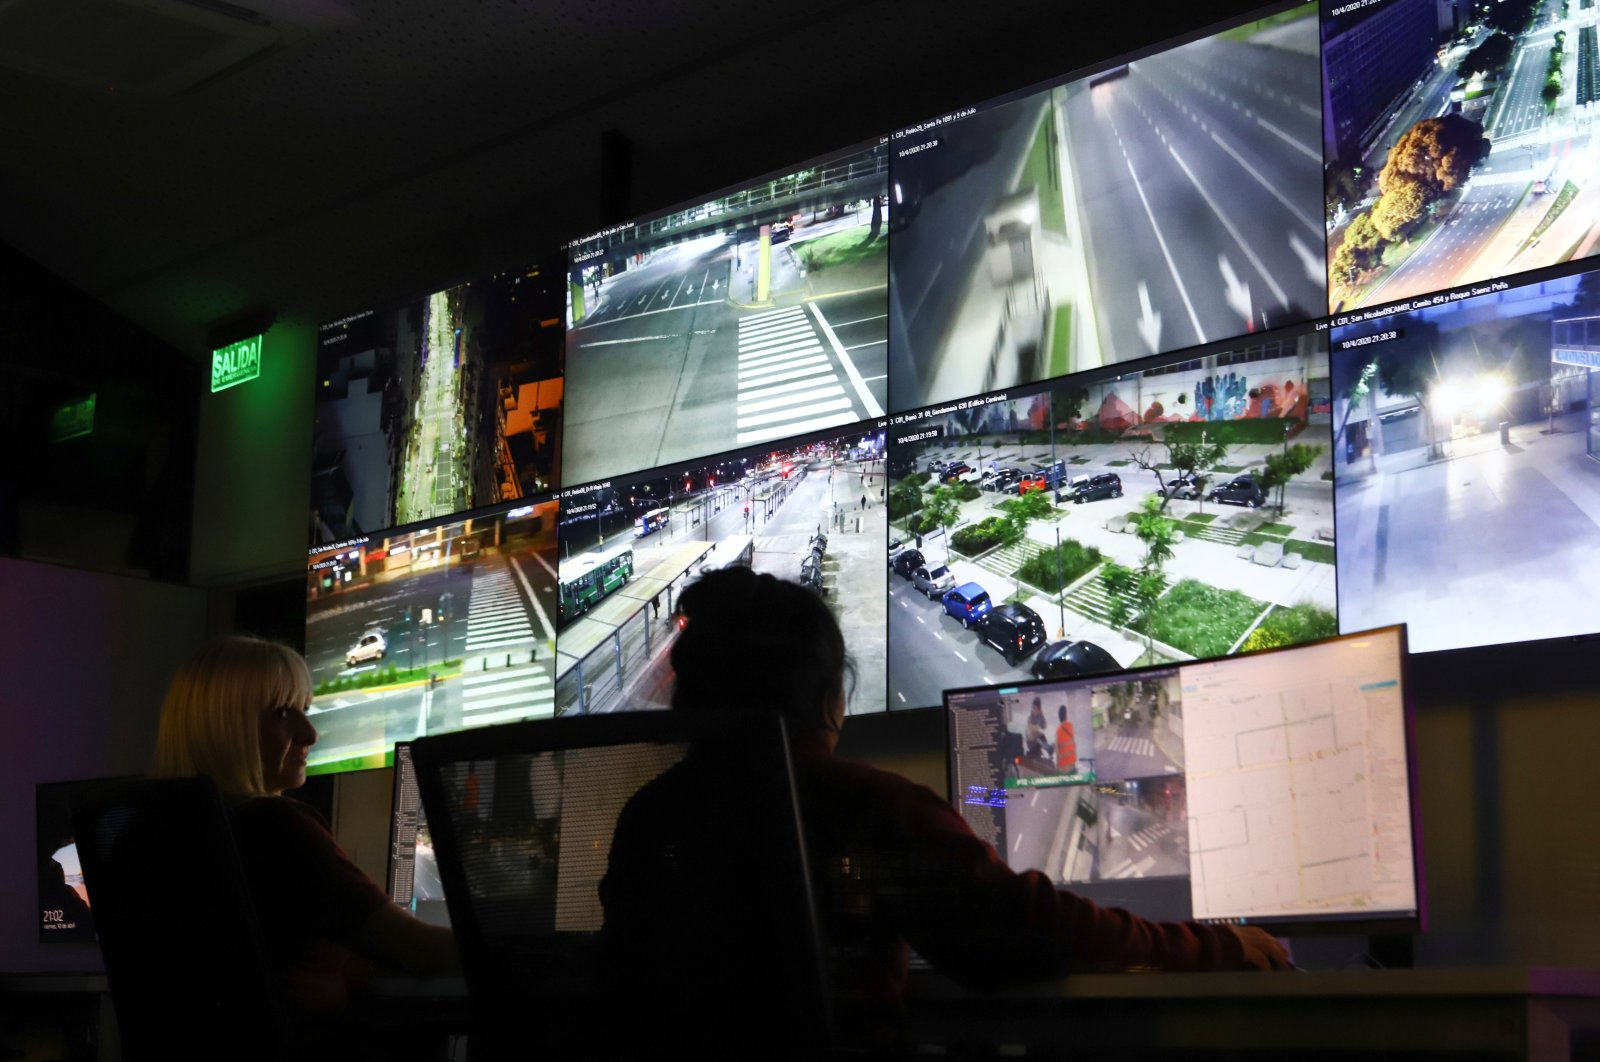 Argentine police officers monitor traffic on the streets from surveillance camera footage, in Buenos Aires, Argentina, April 10, 2020. (Reuters Photo)